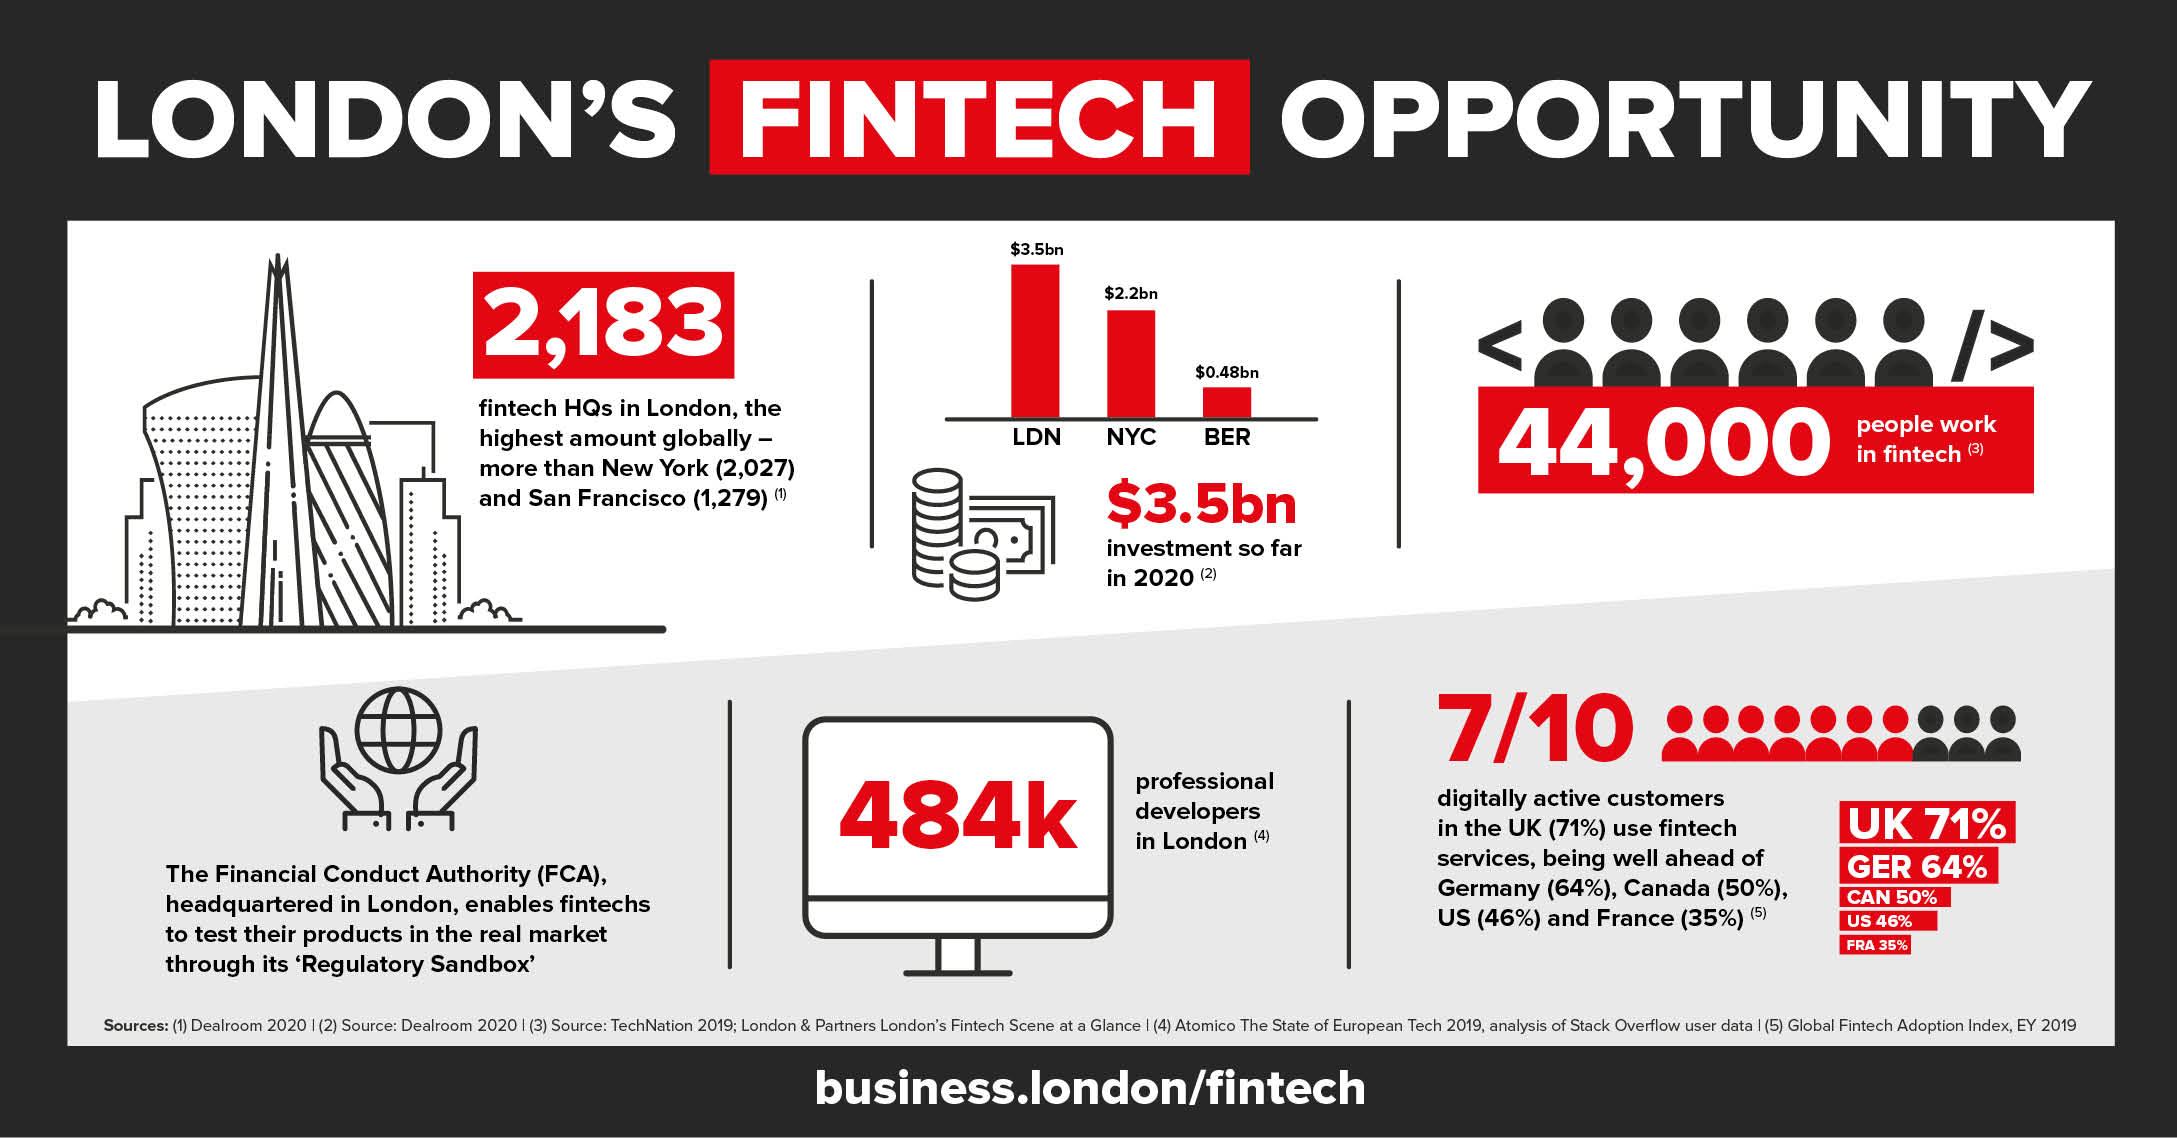 London's fintech opportunity infographic